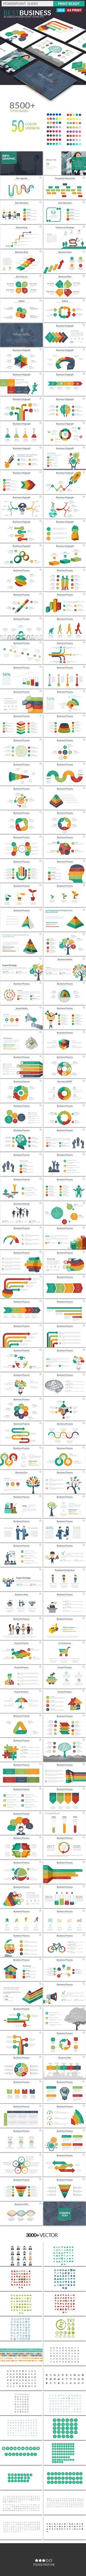 Business infographic & data visualisation   Perfect Business PowerPoint Template…   Infographic   Description  Perfect Business PowerPoint Template    – Infographic Source –   - #Business